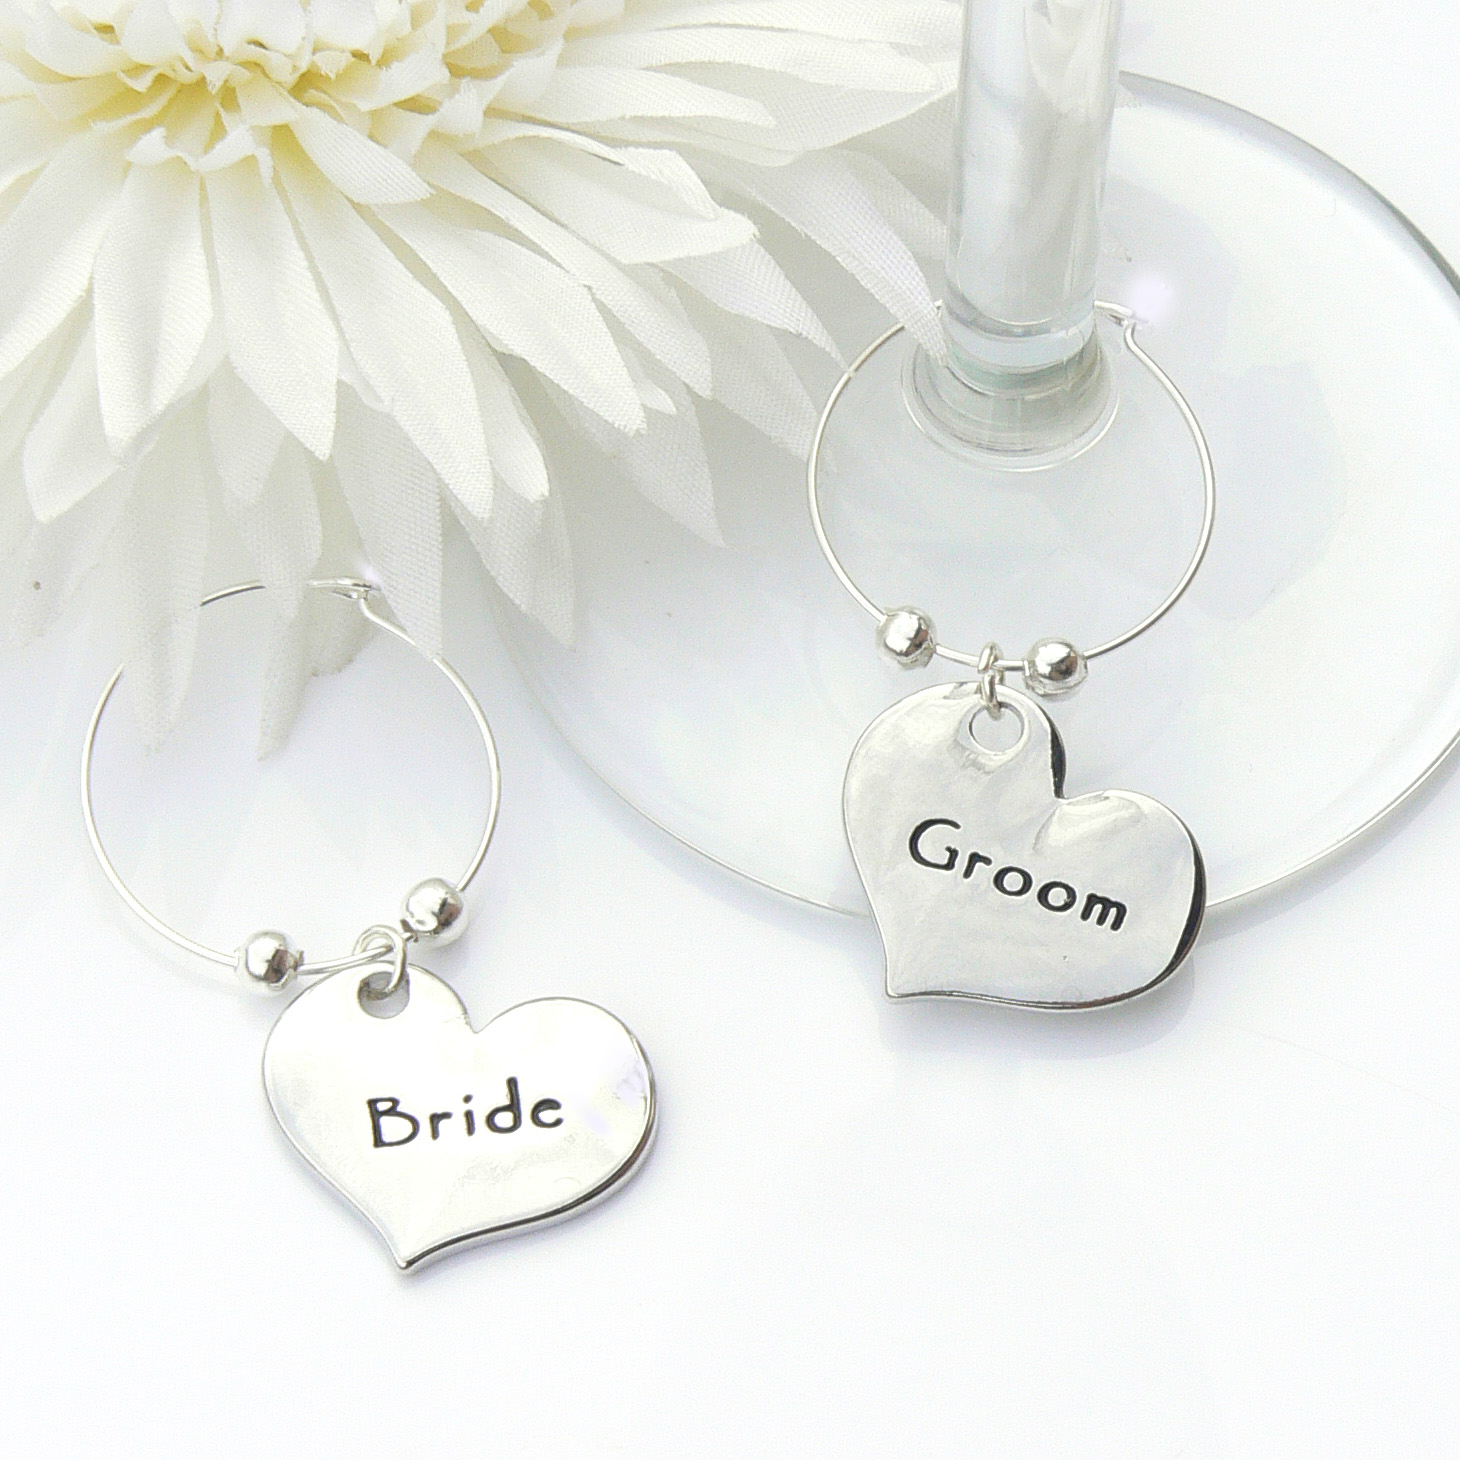 Contemporary Bride and Groom Wine Glass Charms [OE-WGC-0300] - £8.99 ...